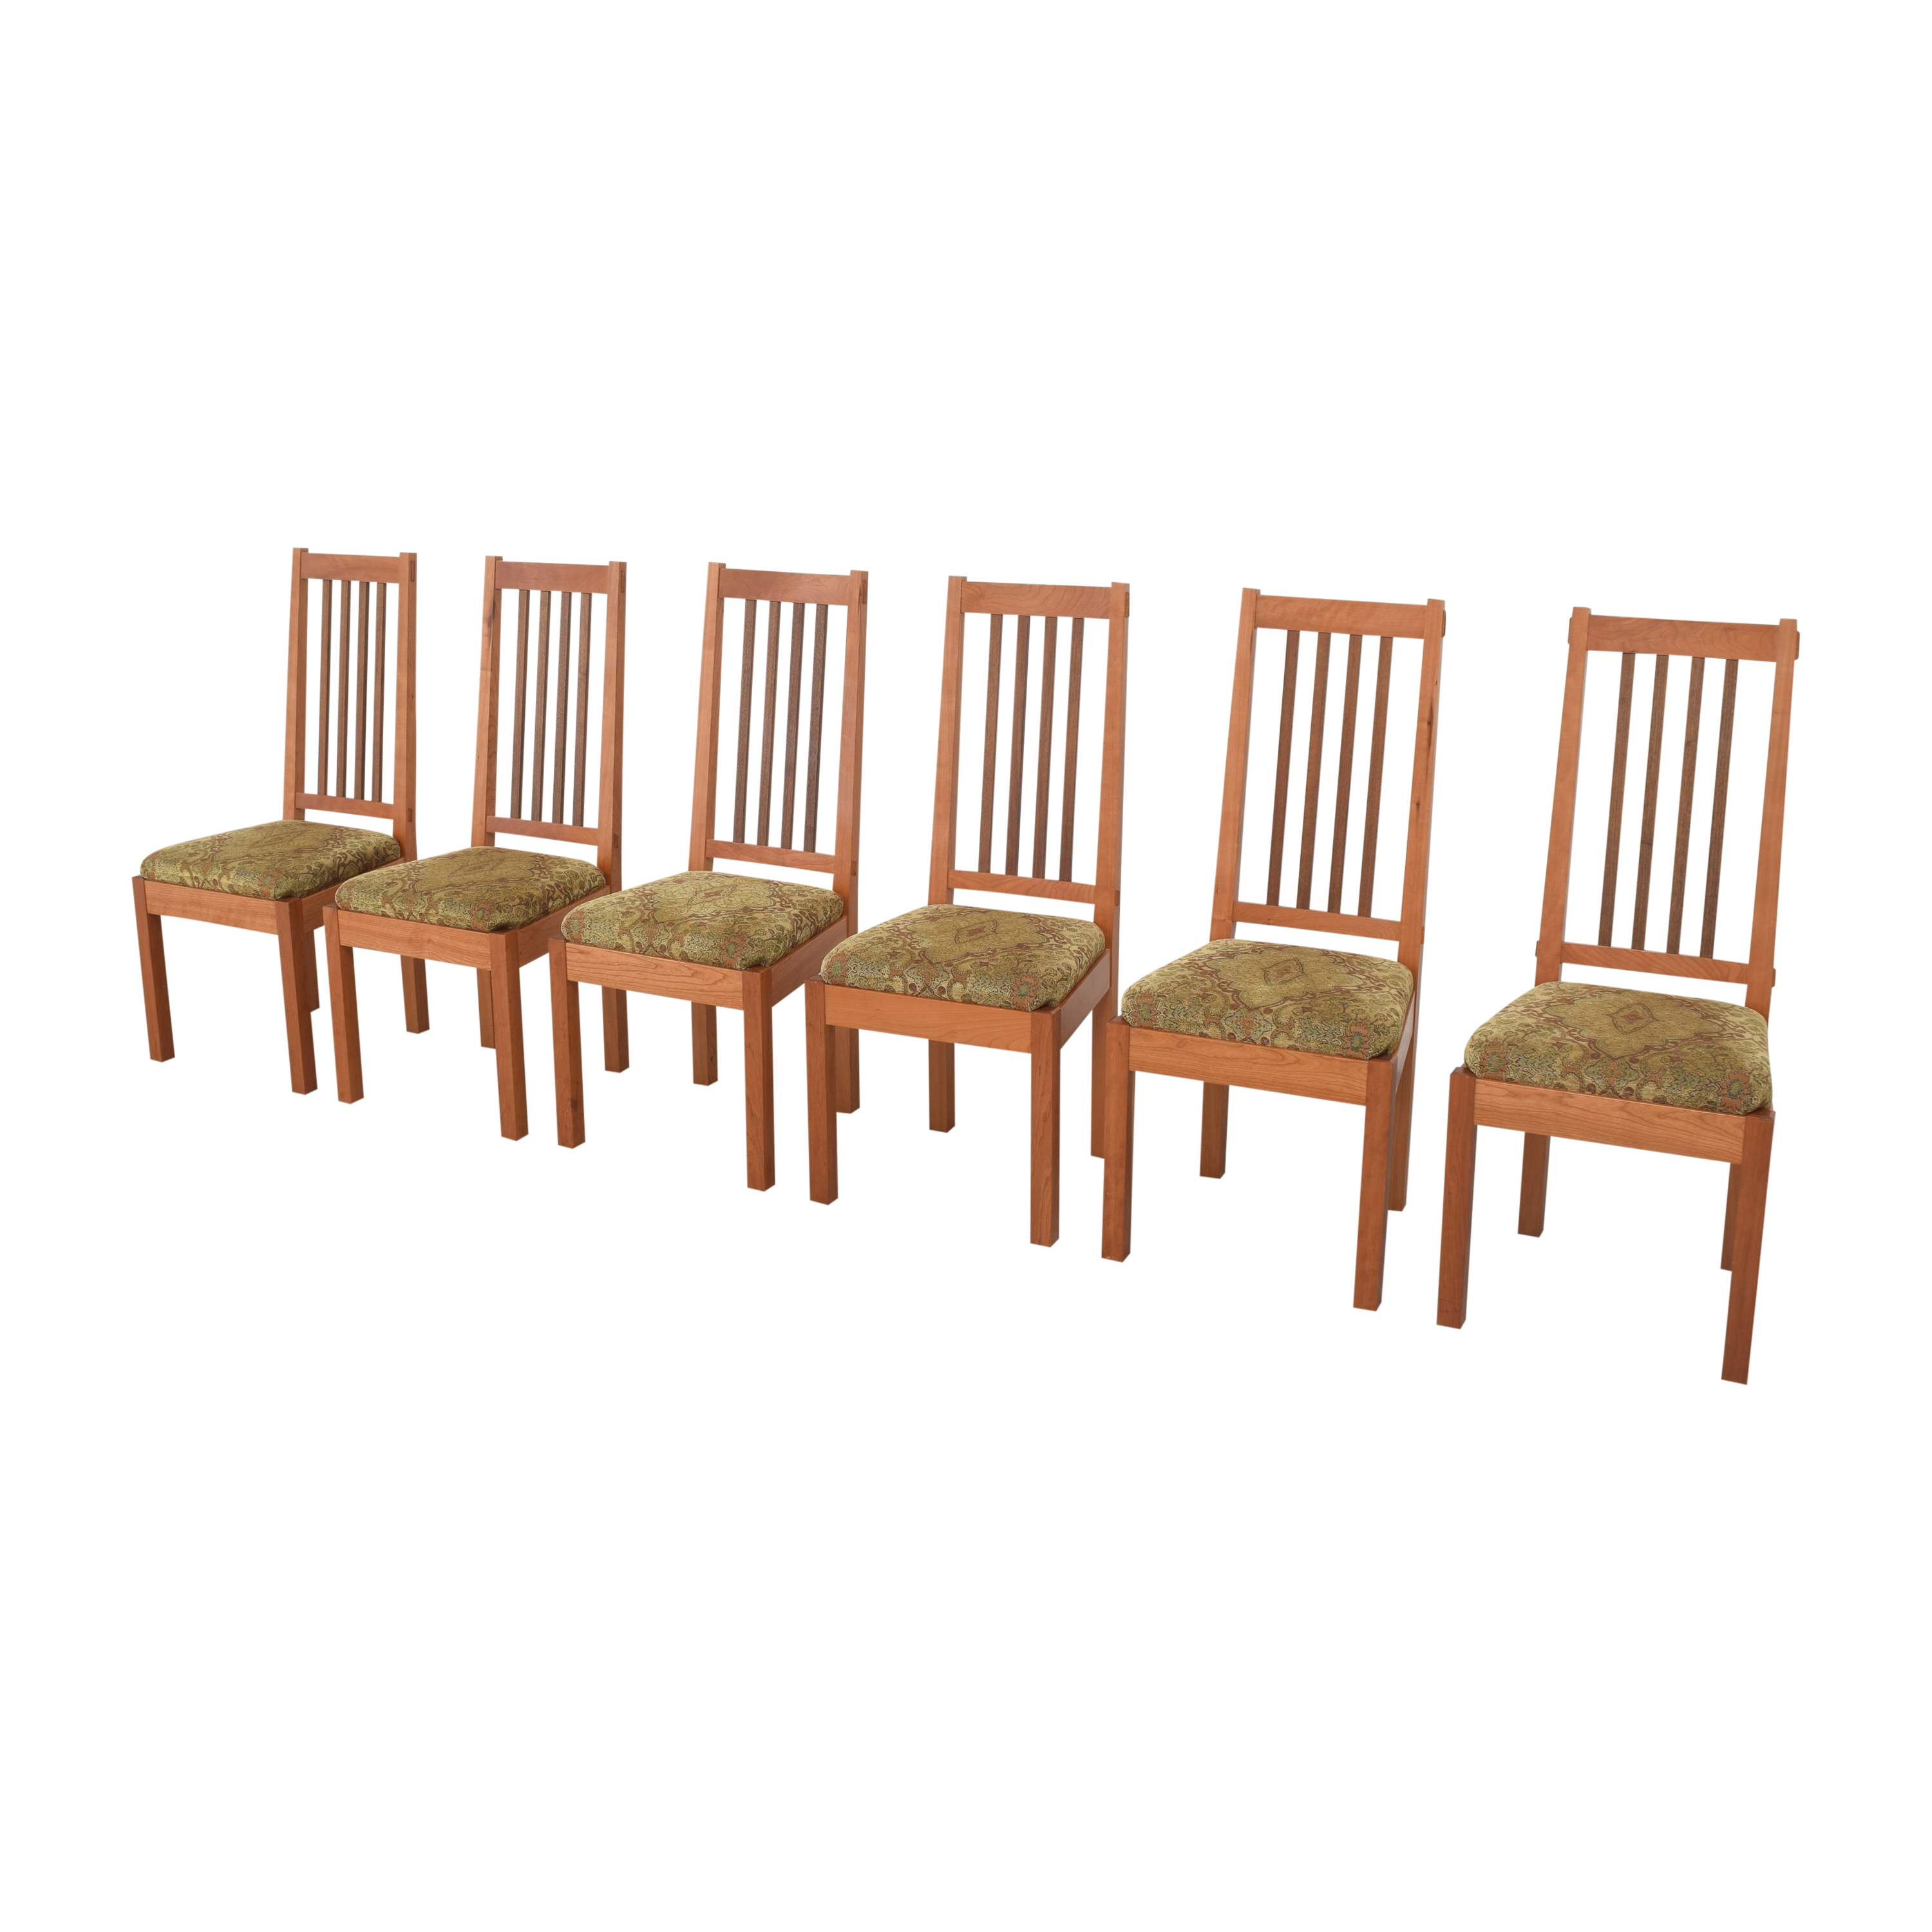 John Lomas John Lomas Mission-Style Dining Side Chairs for sale